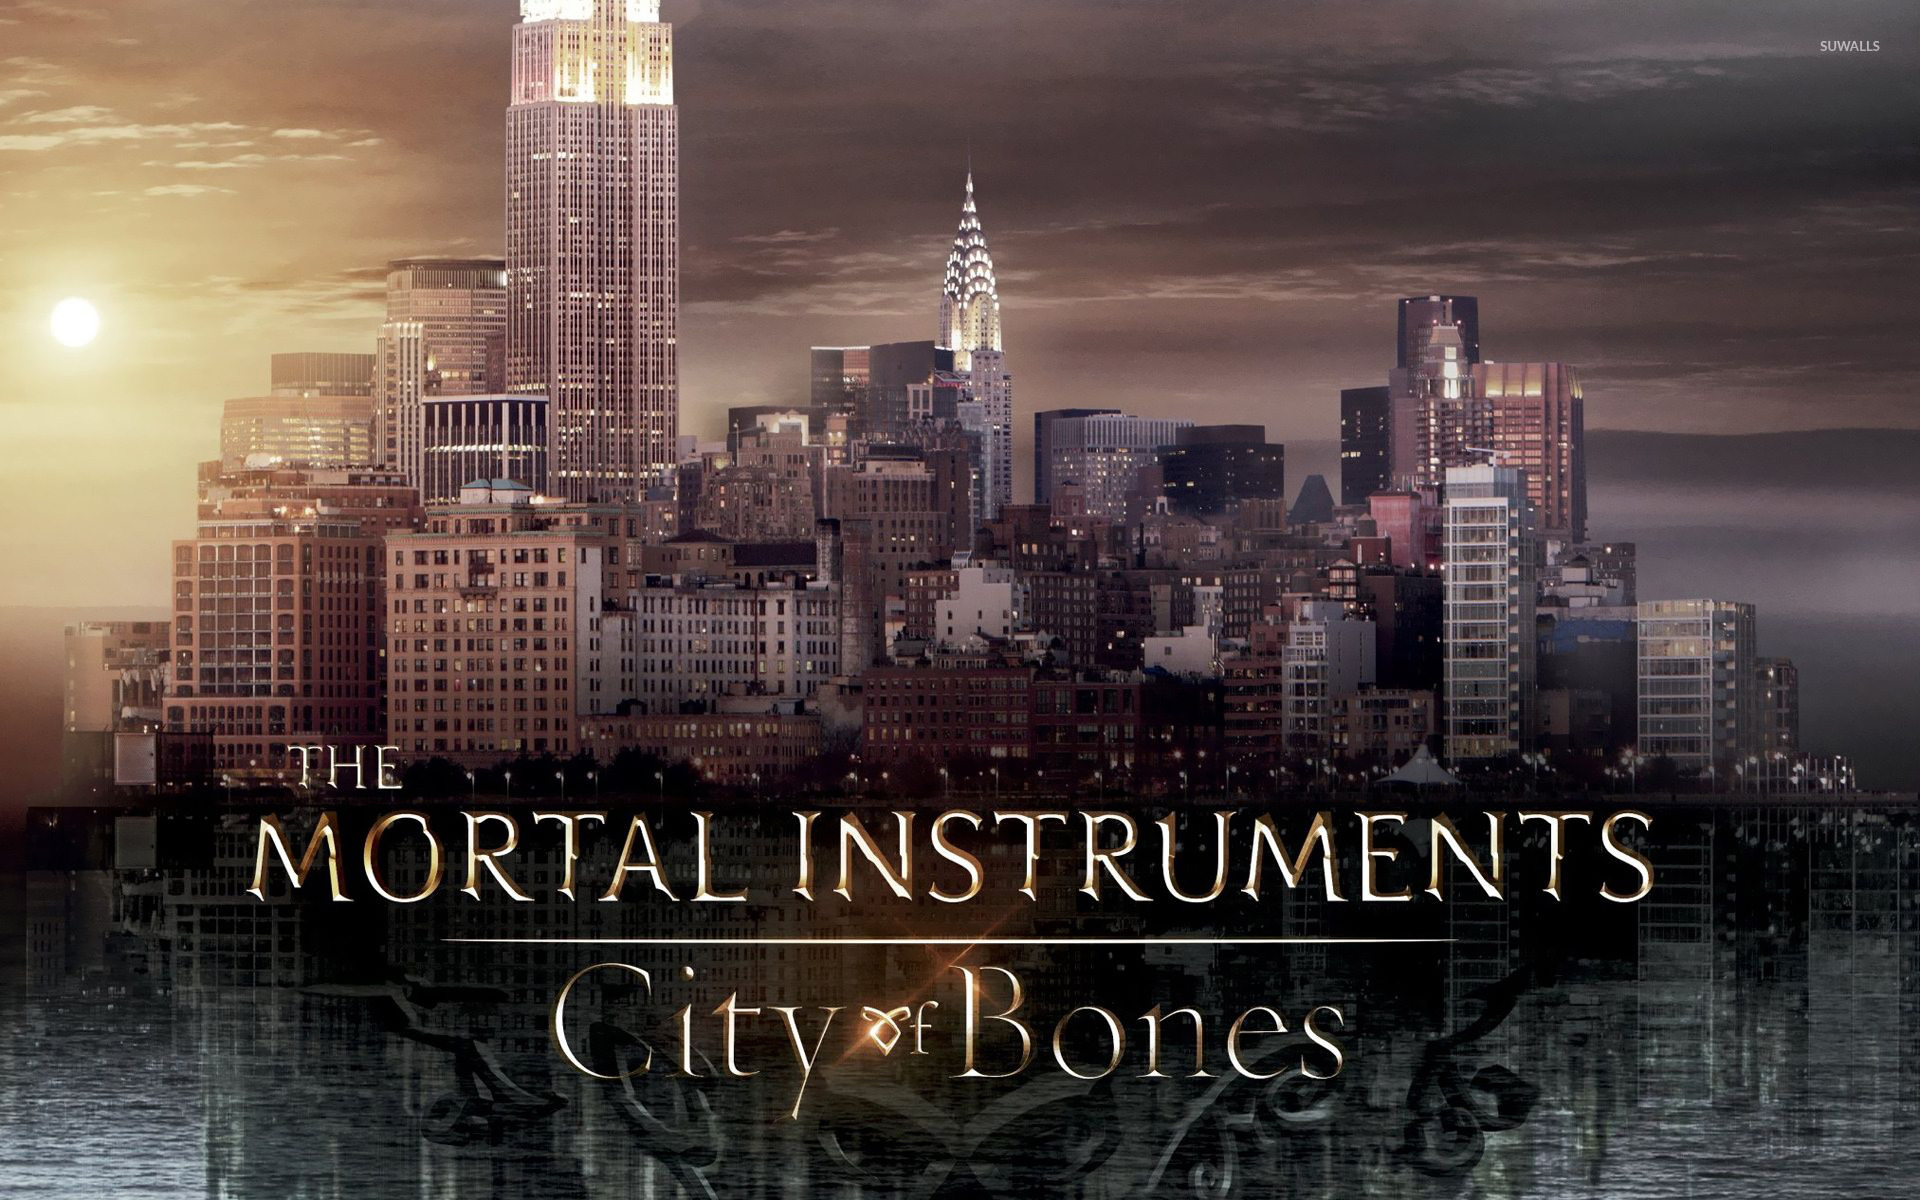 the mortal instruments: city of bones [2] wallpaper - movie